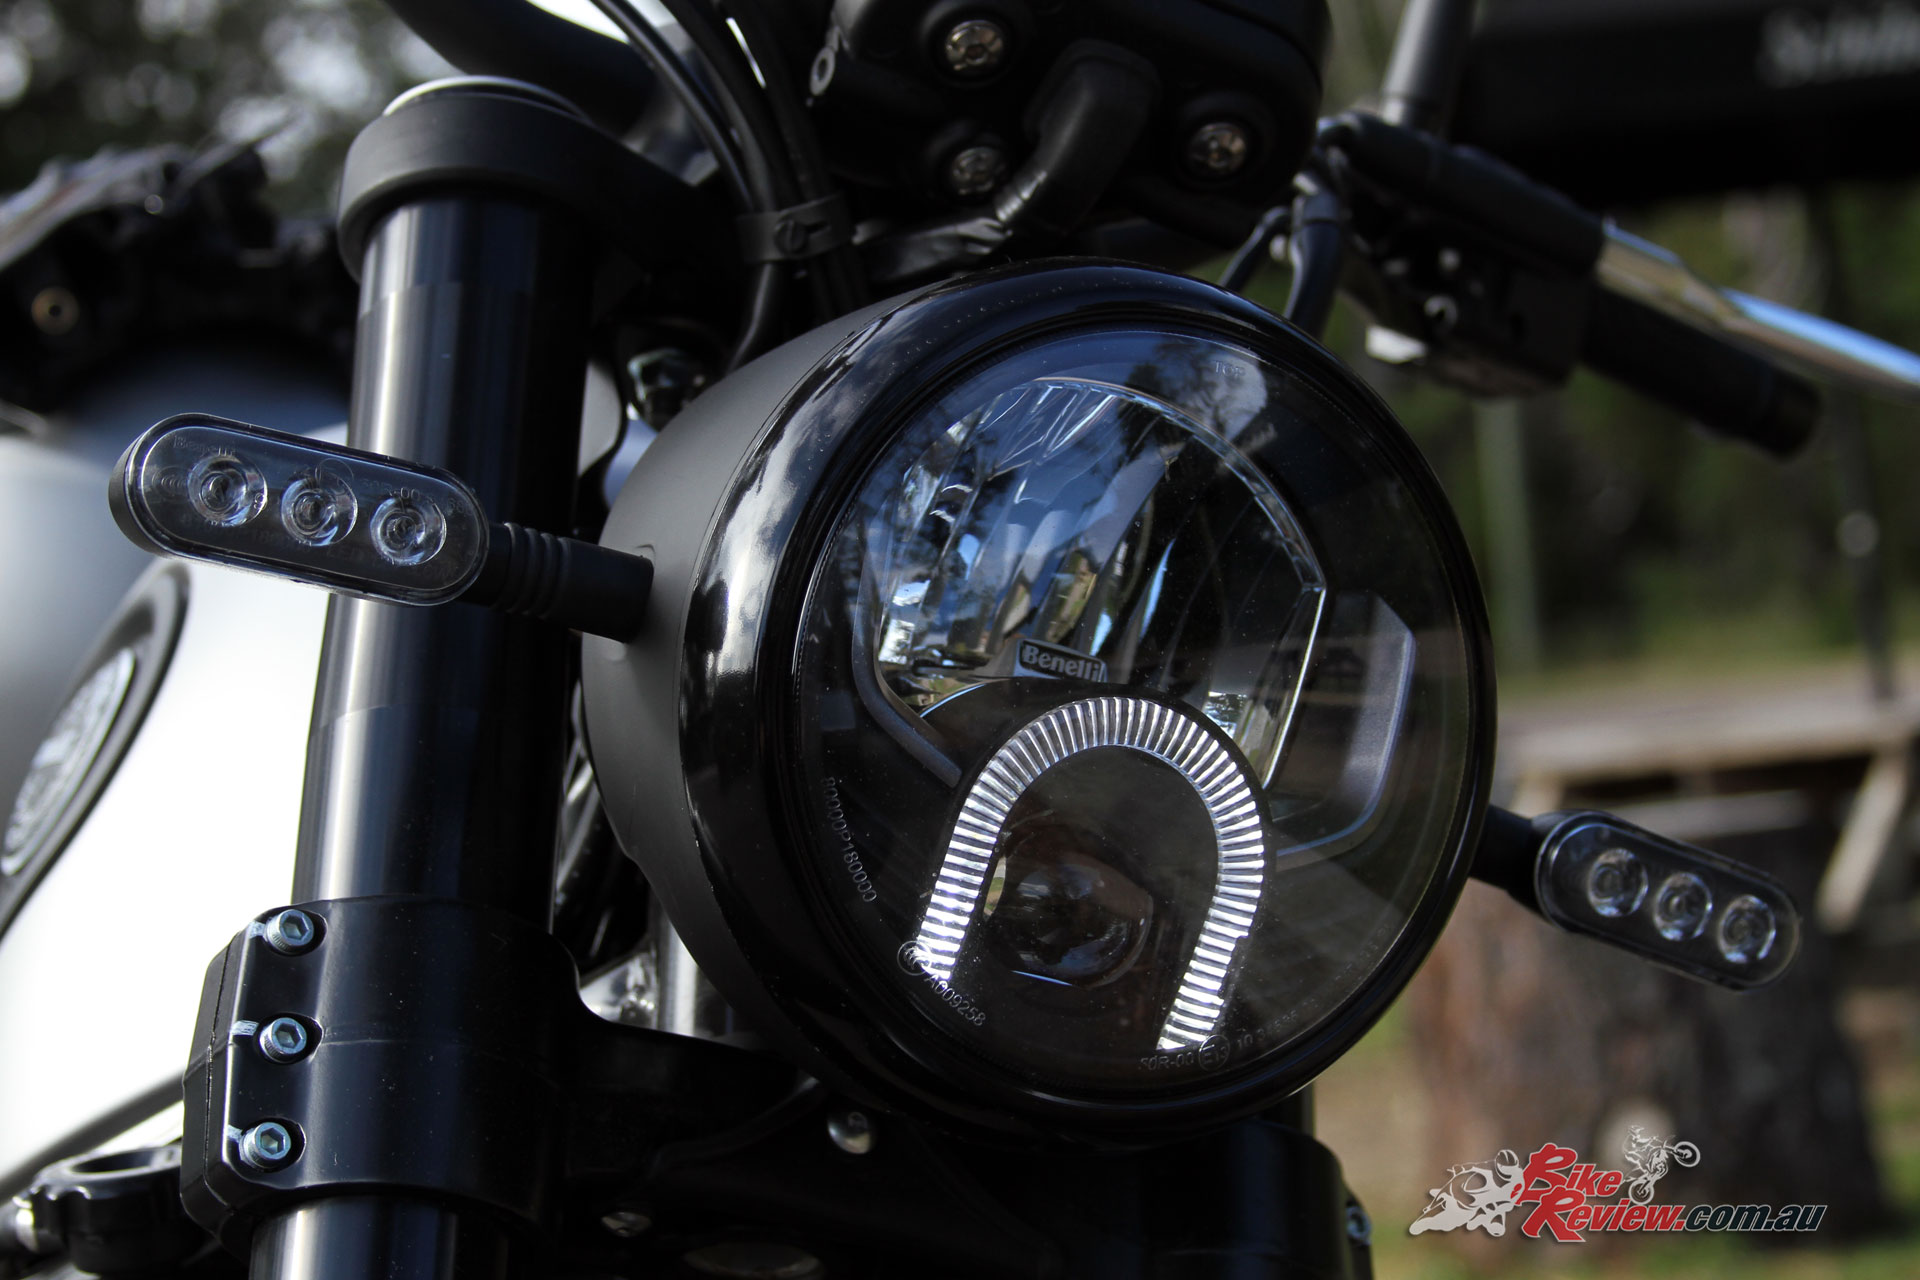 Headlight and indicators look the business and do a great job